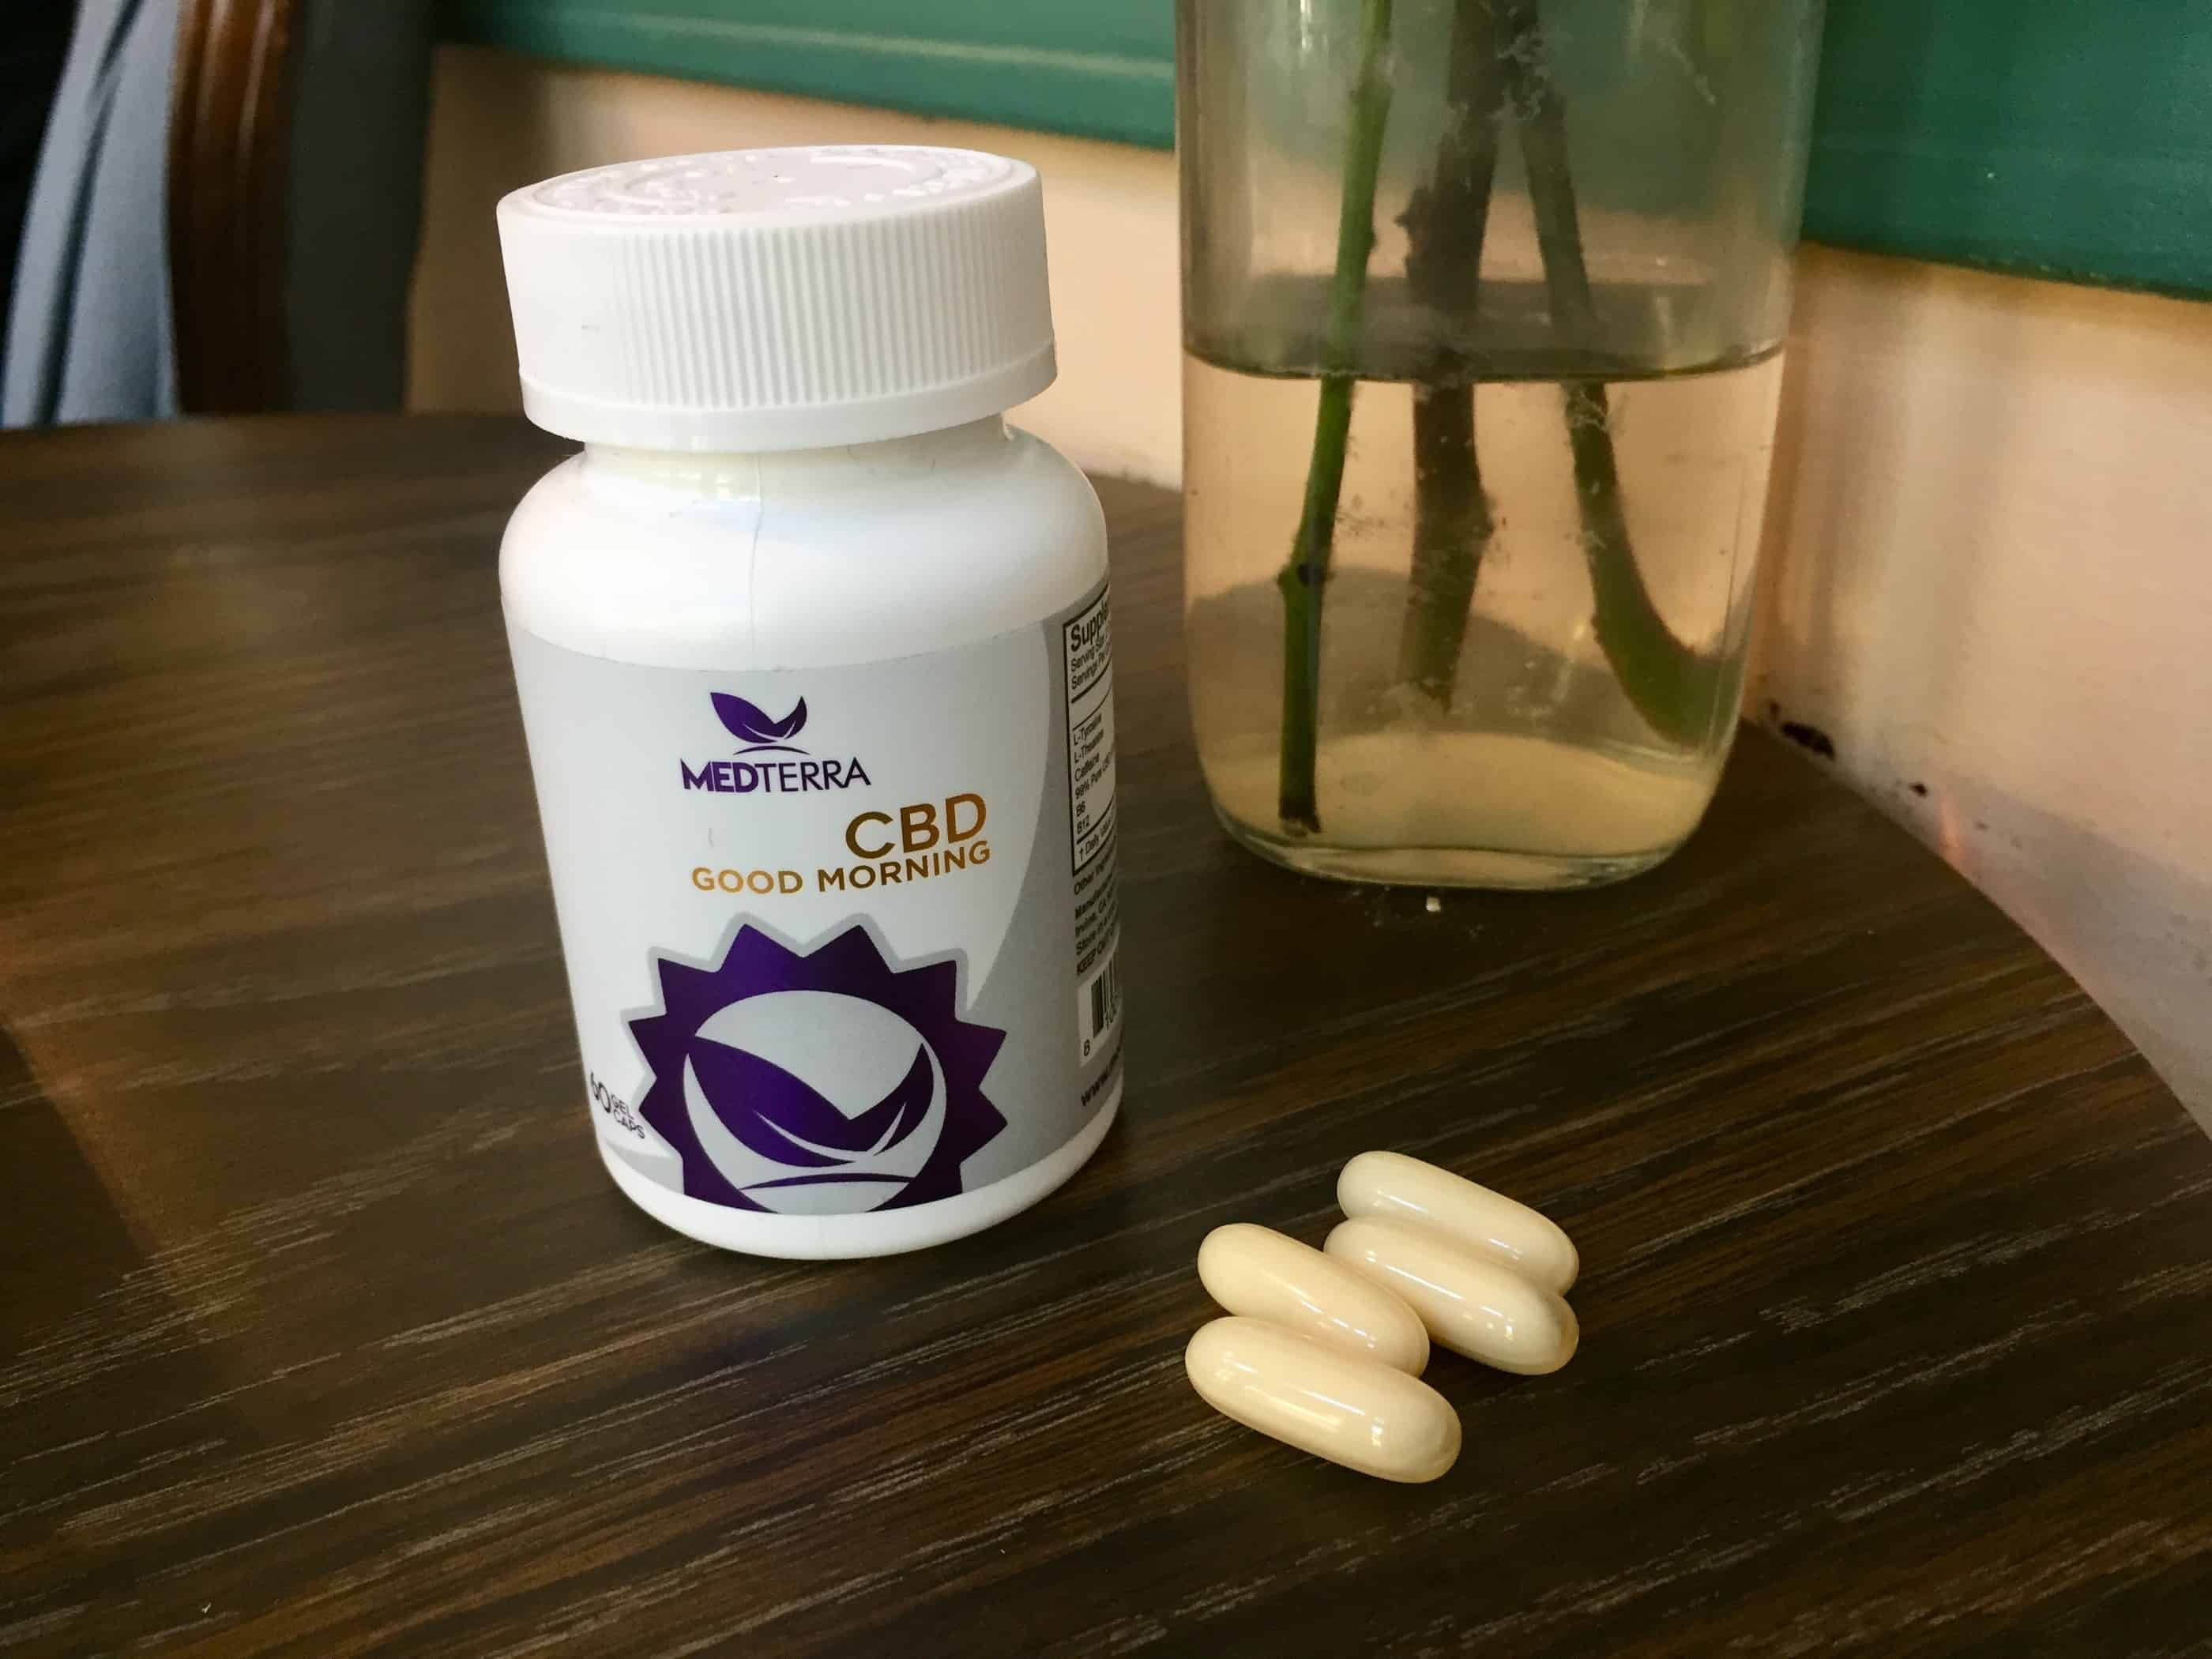 Medterra Good Morning Capsules Save On Cannabis beauty shot